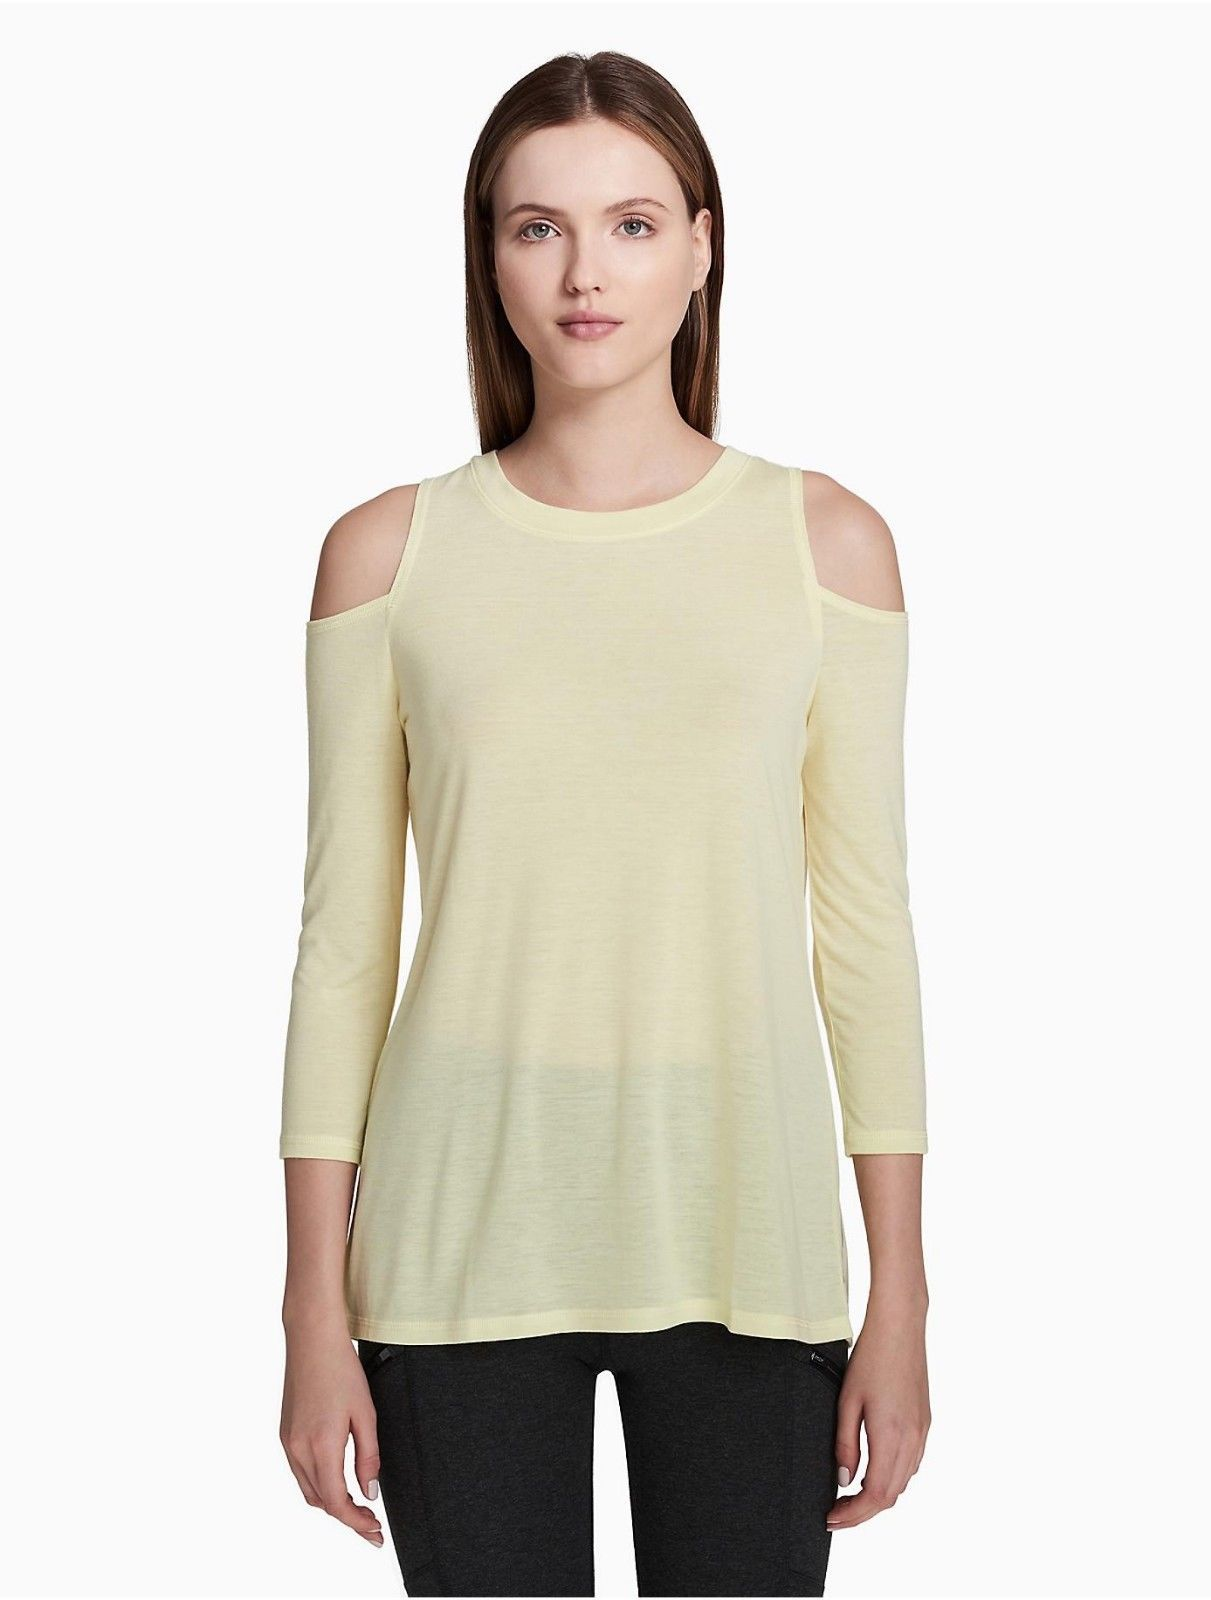 Calvin Klein Performance Cold-Shoulder Tie-Back Top PF8T2828 Grey Citrus Yellow image 7